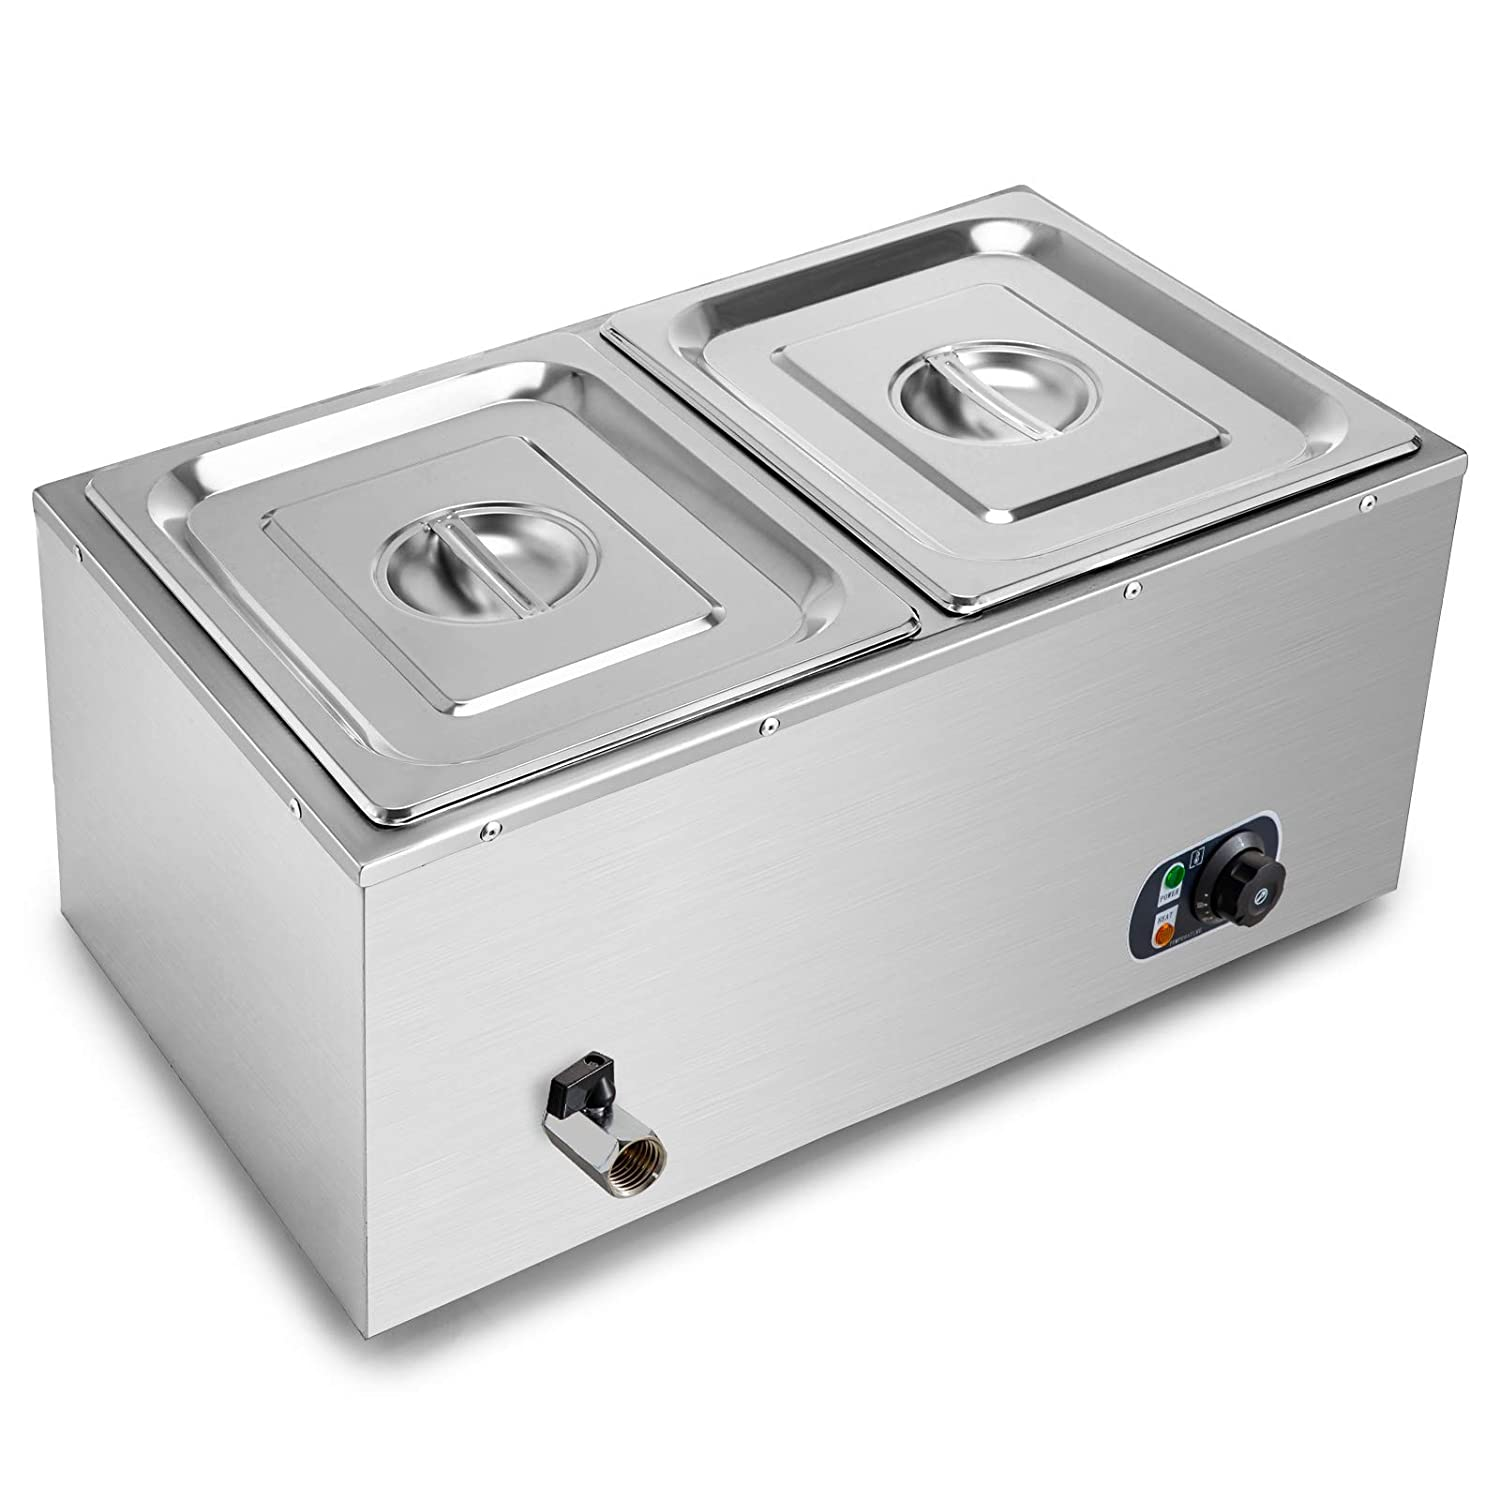 VEVOR 110V 2 Commercial Food Warmer 850W Electric Steam Table 15cm/6inch Deep Stainless Steel Bain Marie 11Quart/Pan for Buffet Catering, Silver